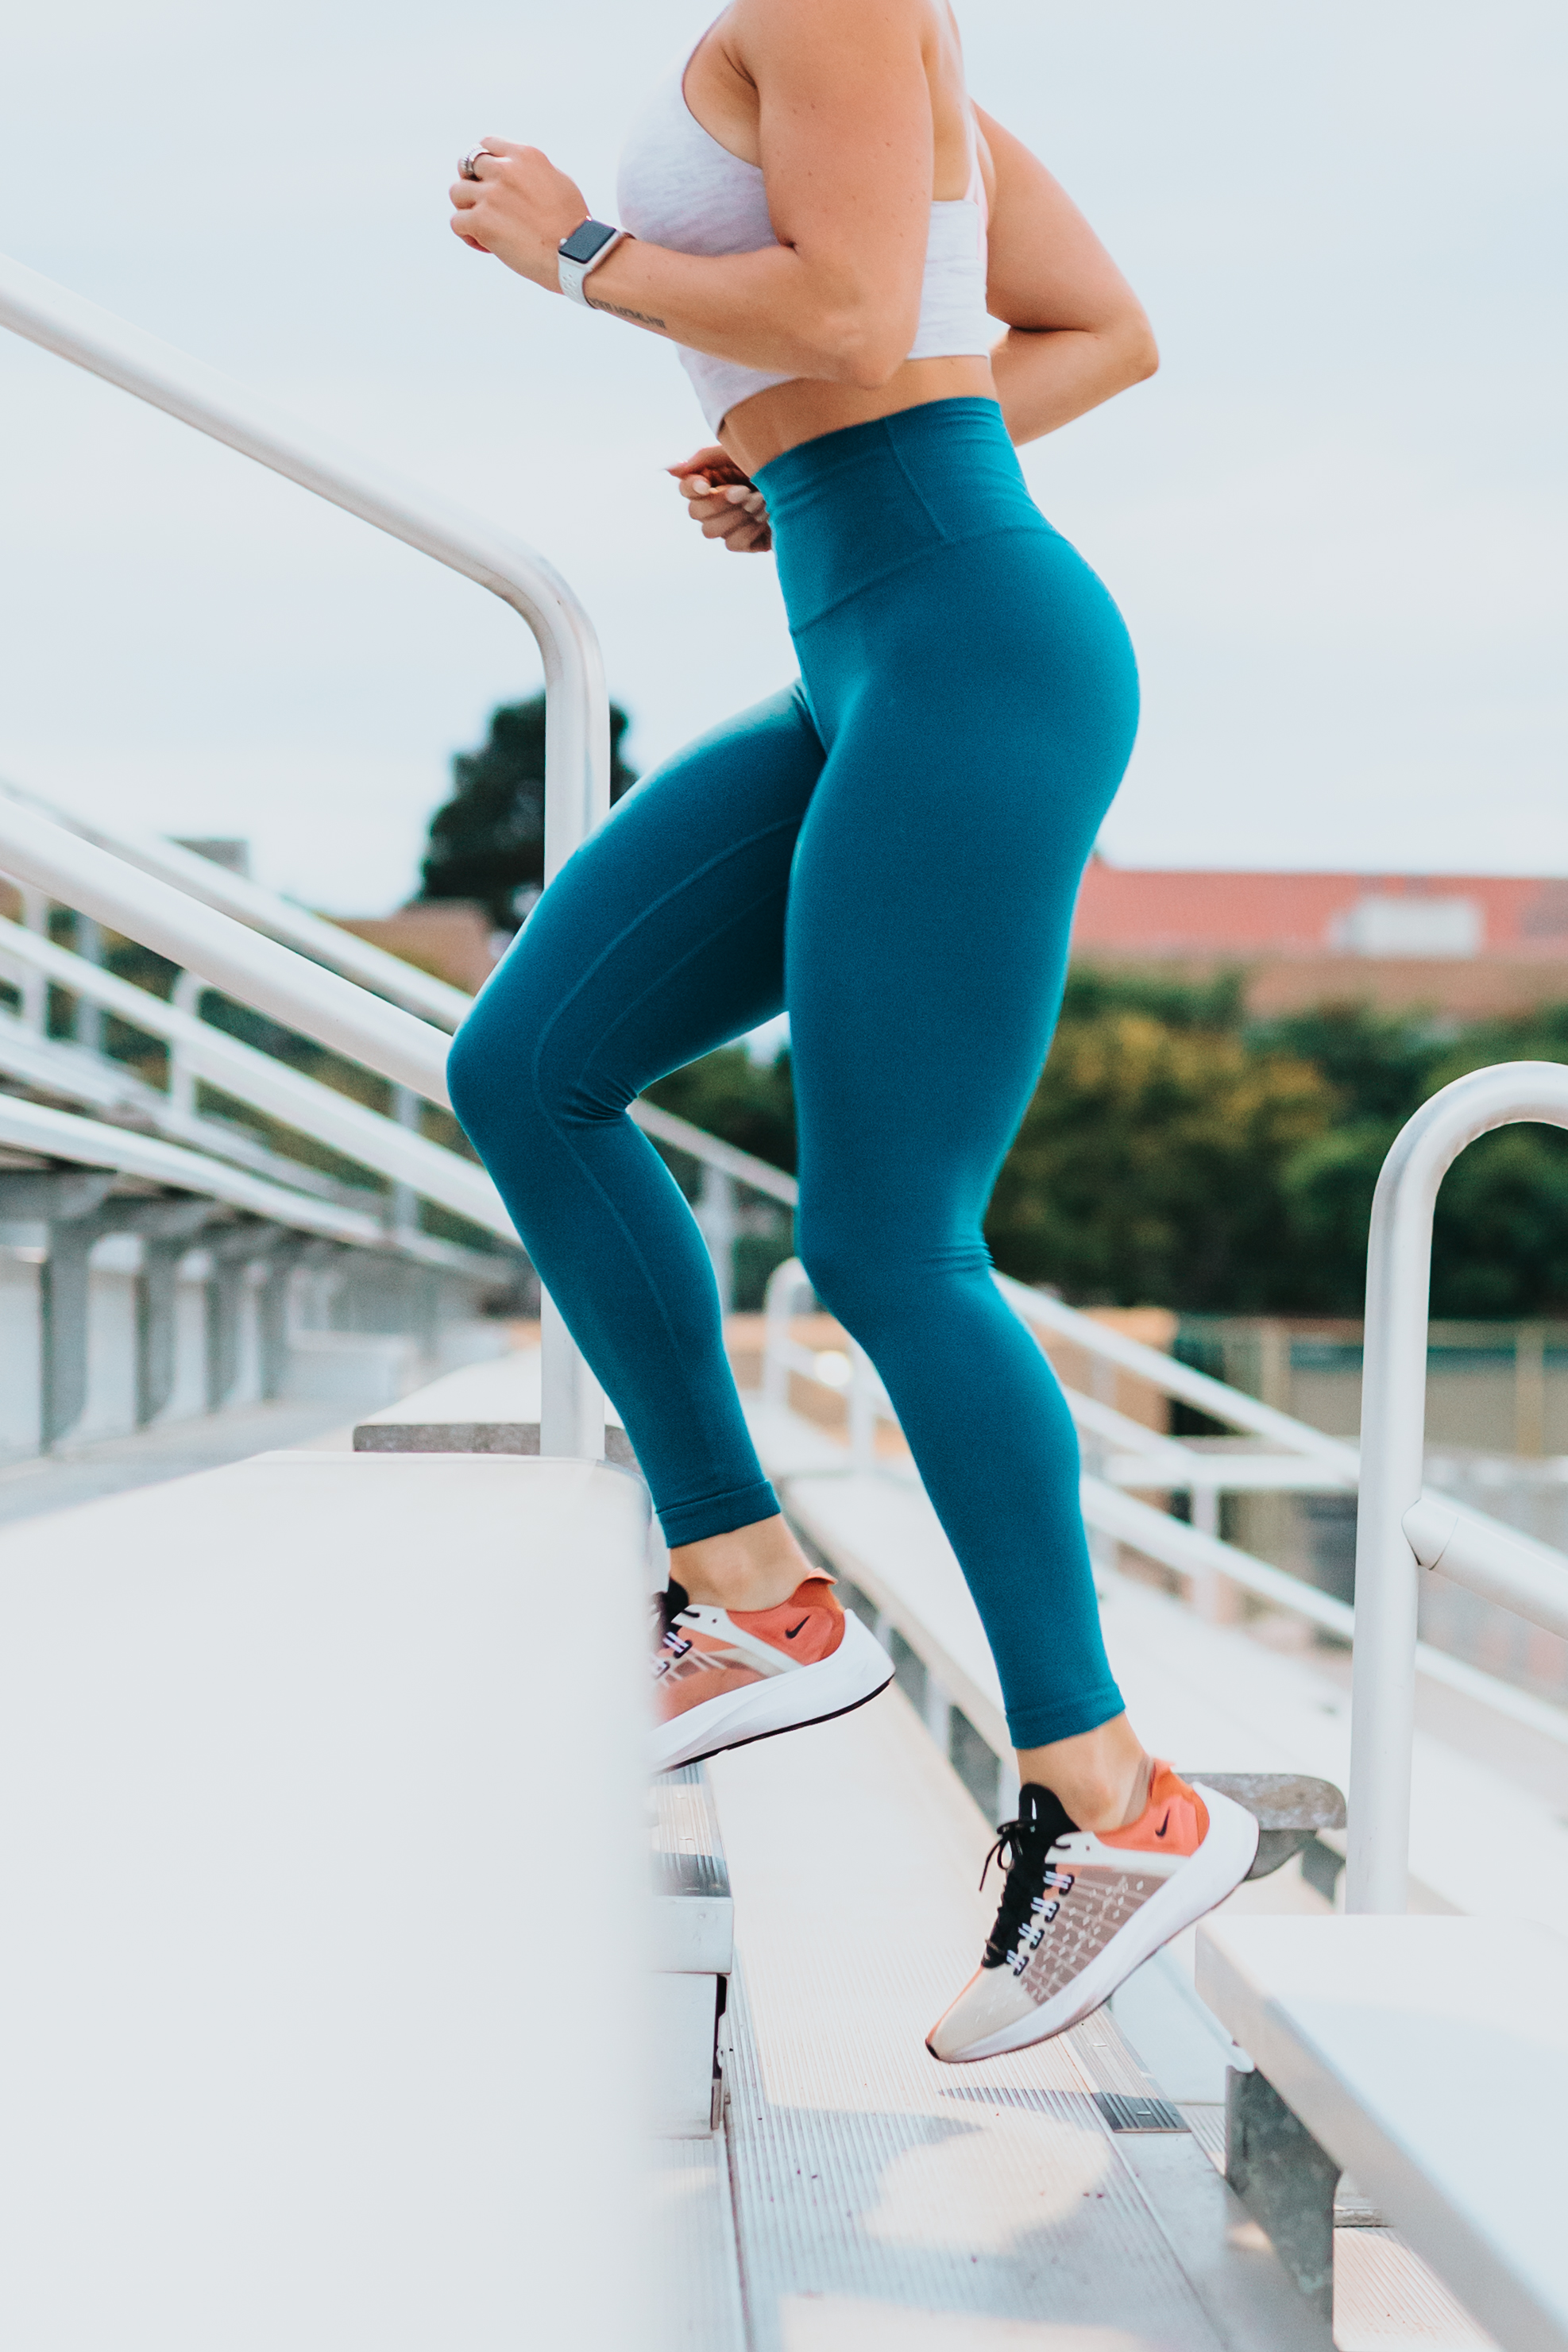 Fitness images download free pictures on unsplash